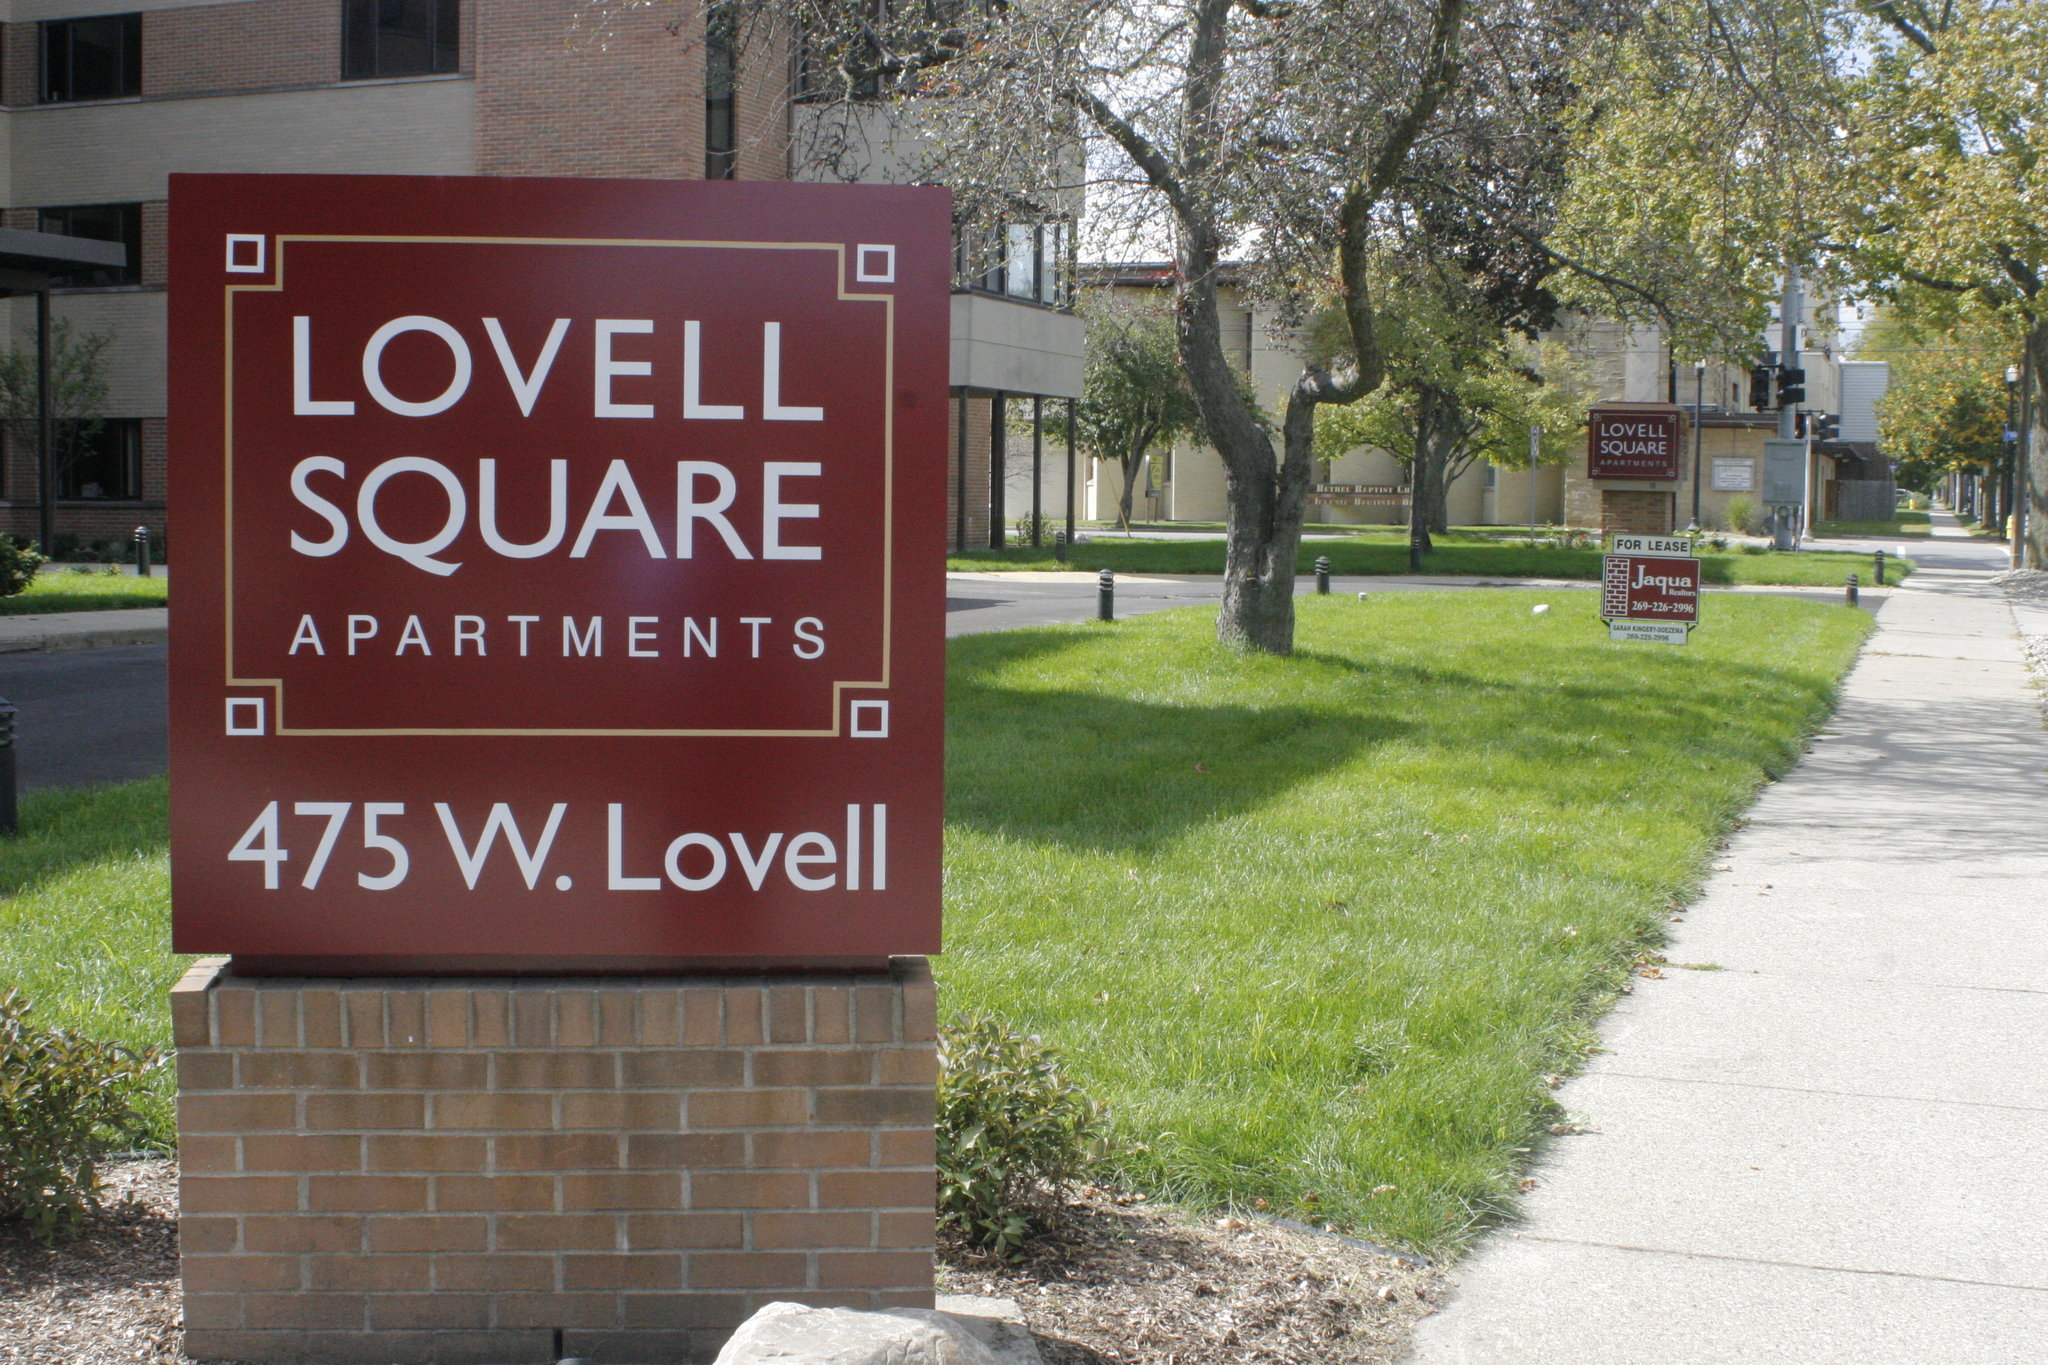 Lovell Square